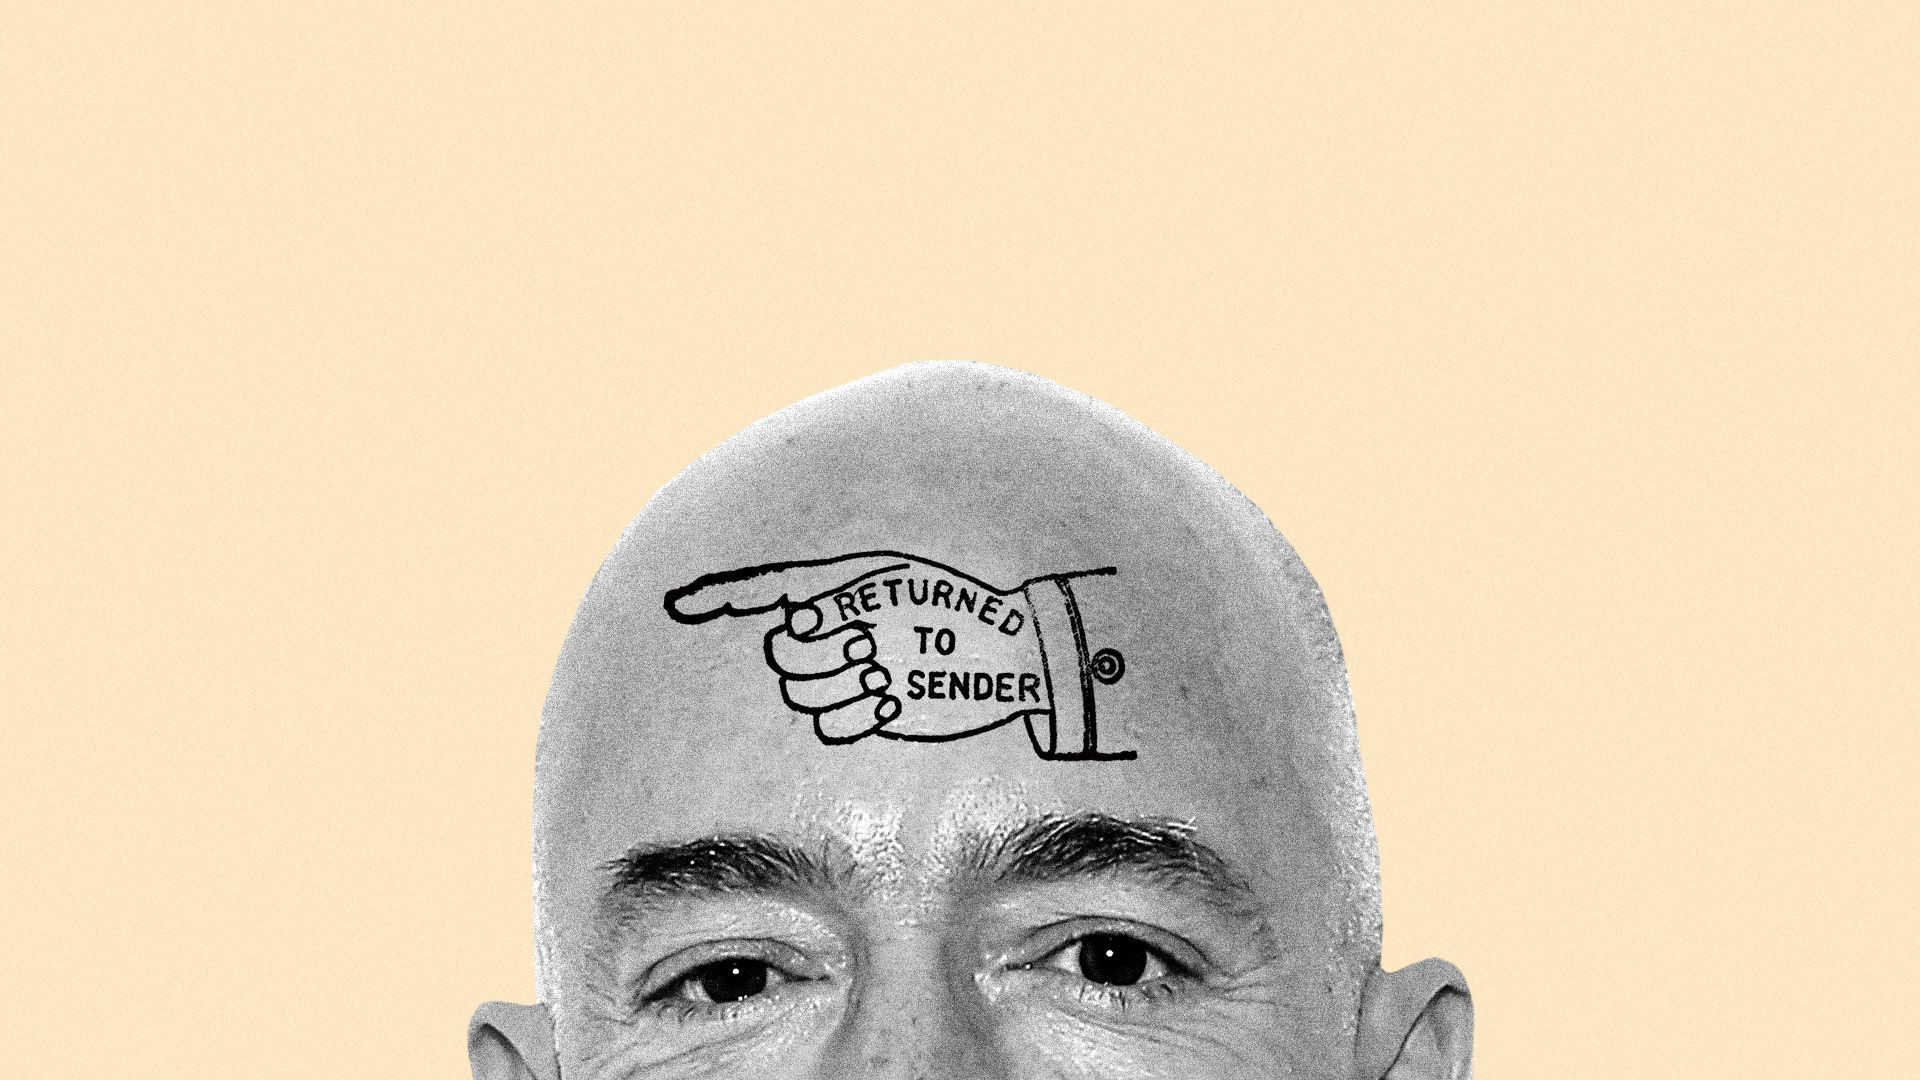 In this image, only the forehead of Jeff Bezos is visible. On his forehead, a cartoon illustration that says 'return to sender' is displayed.